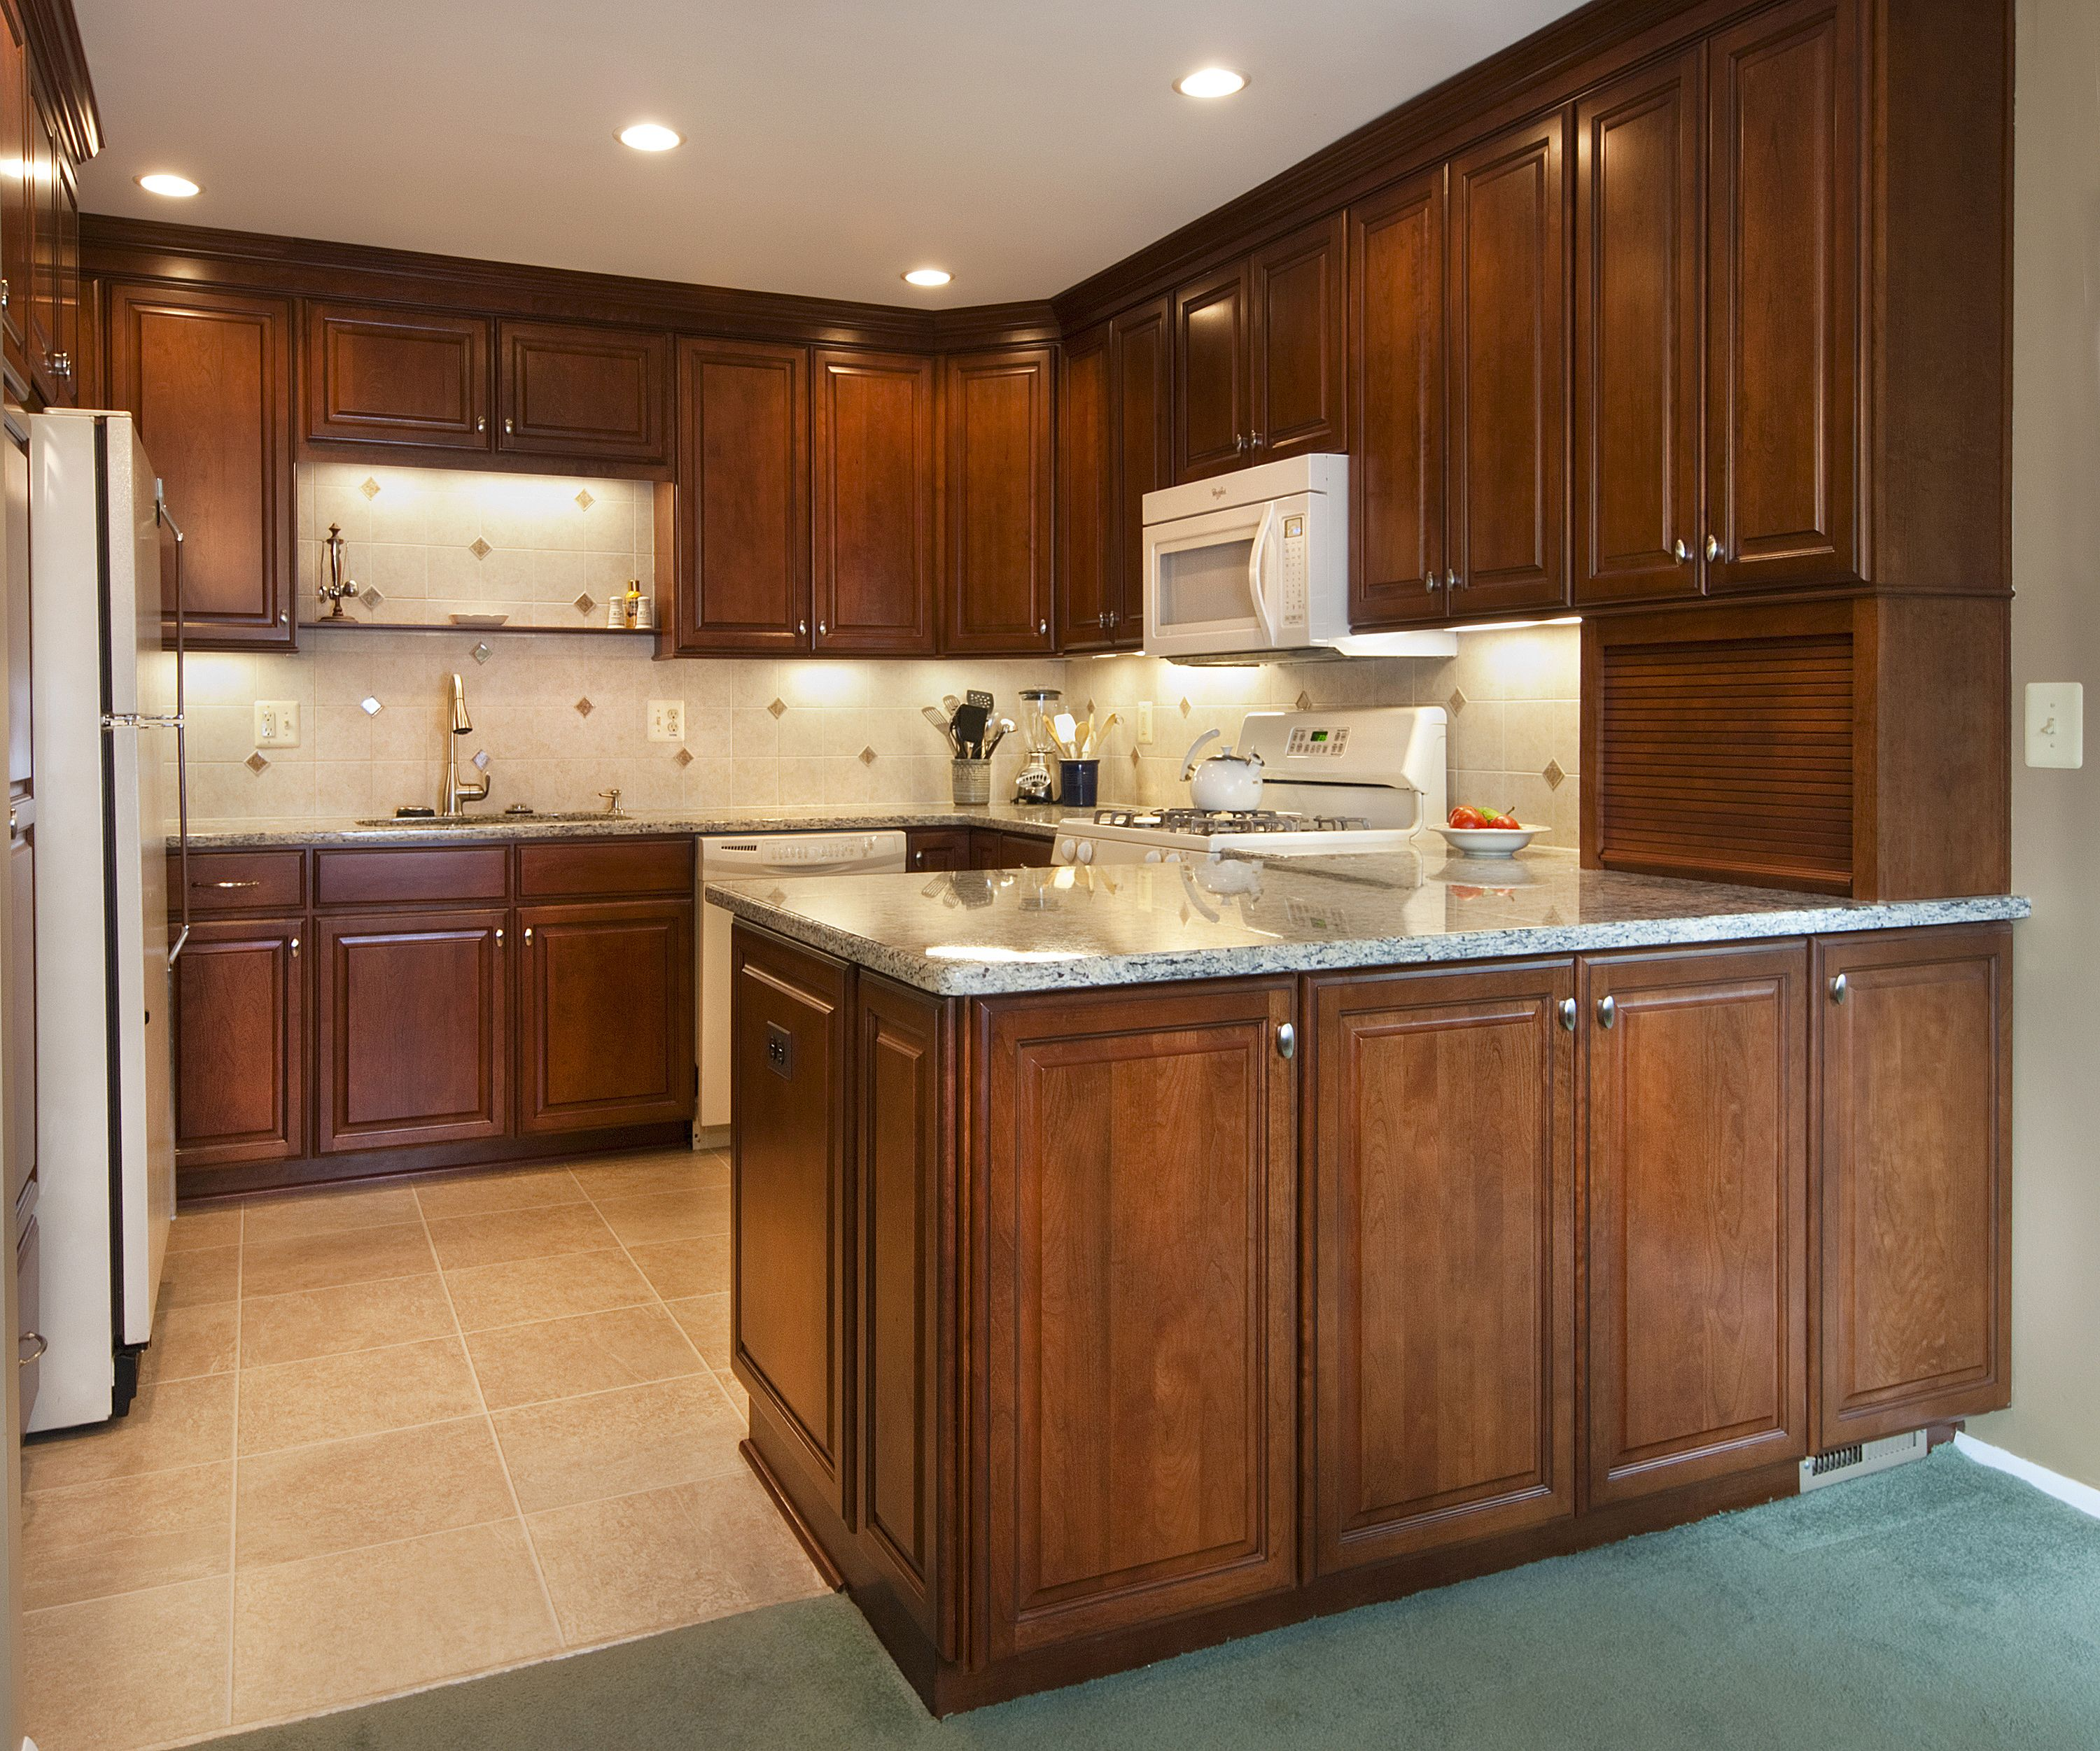 Kitchen And Bathroom Remodeling Contractors: Joppatown, MD Kitchen By Bel Air Construction